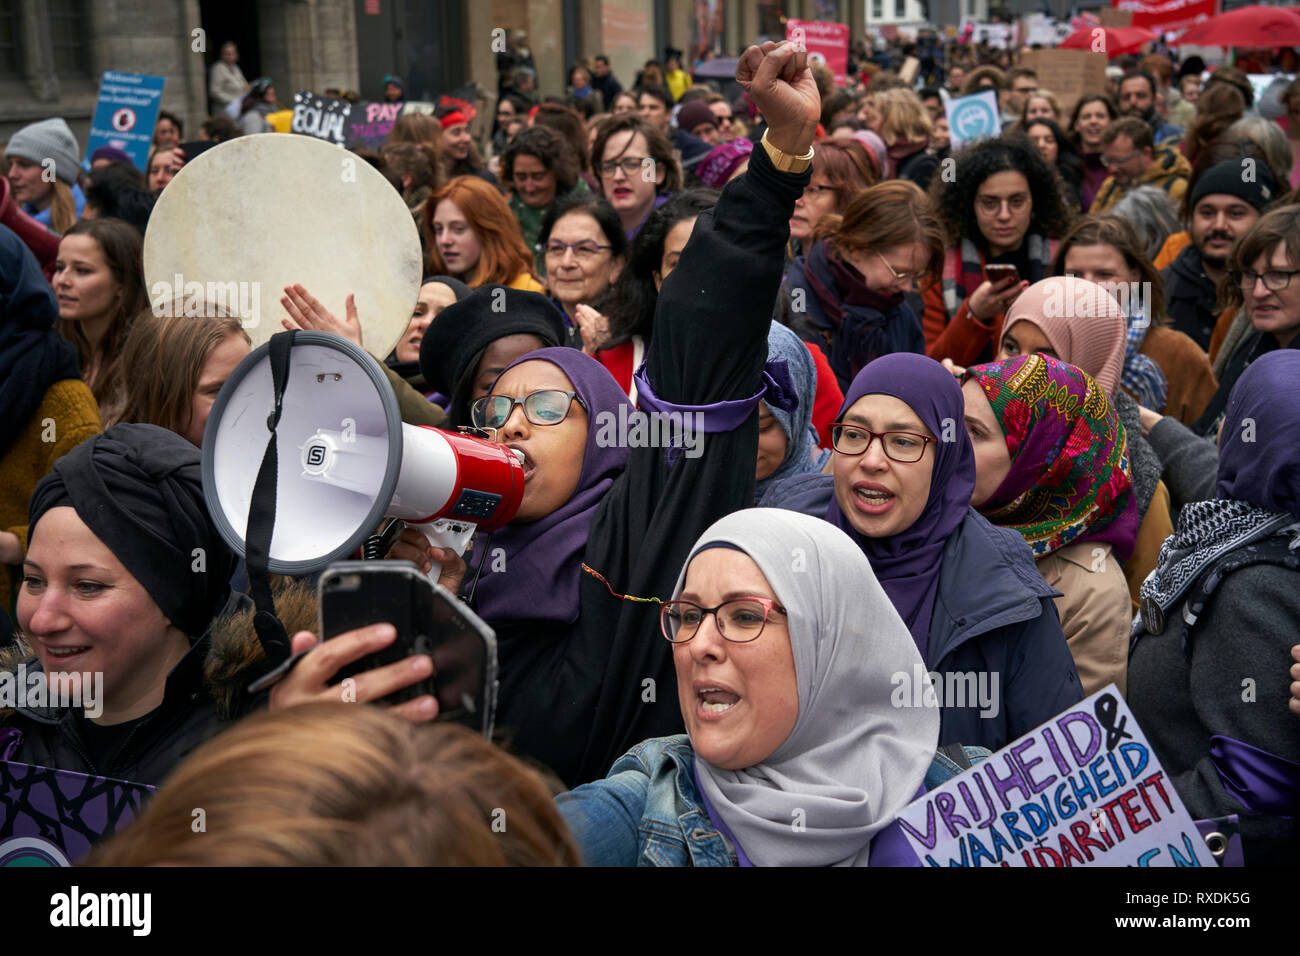 Amsterdam, Netherlands. 9th Mar 2019. Muslim women's groups take part in the demonstration demanding that their rights be respected. Convened by the Women's March movement, today women demonstrated in Amsterdam following in the footsteps of great marches around the world in defence of women's rights and for gender equality. Credit: Nacho Calonge/Alamy Live News - Stock Image